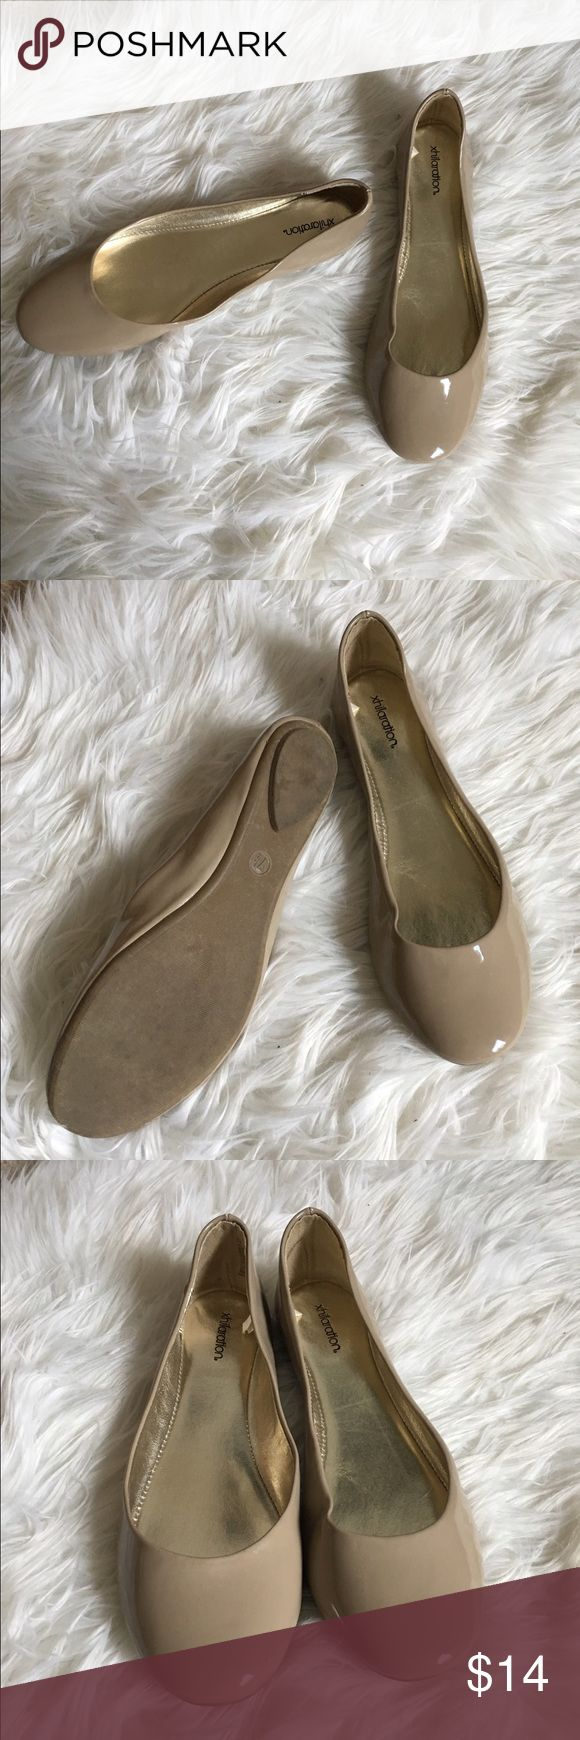 Nude Patent Leather Ballet Flats Nude Patent Leather Ballet Flats Shoes Flats & Loafers